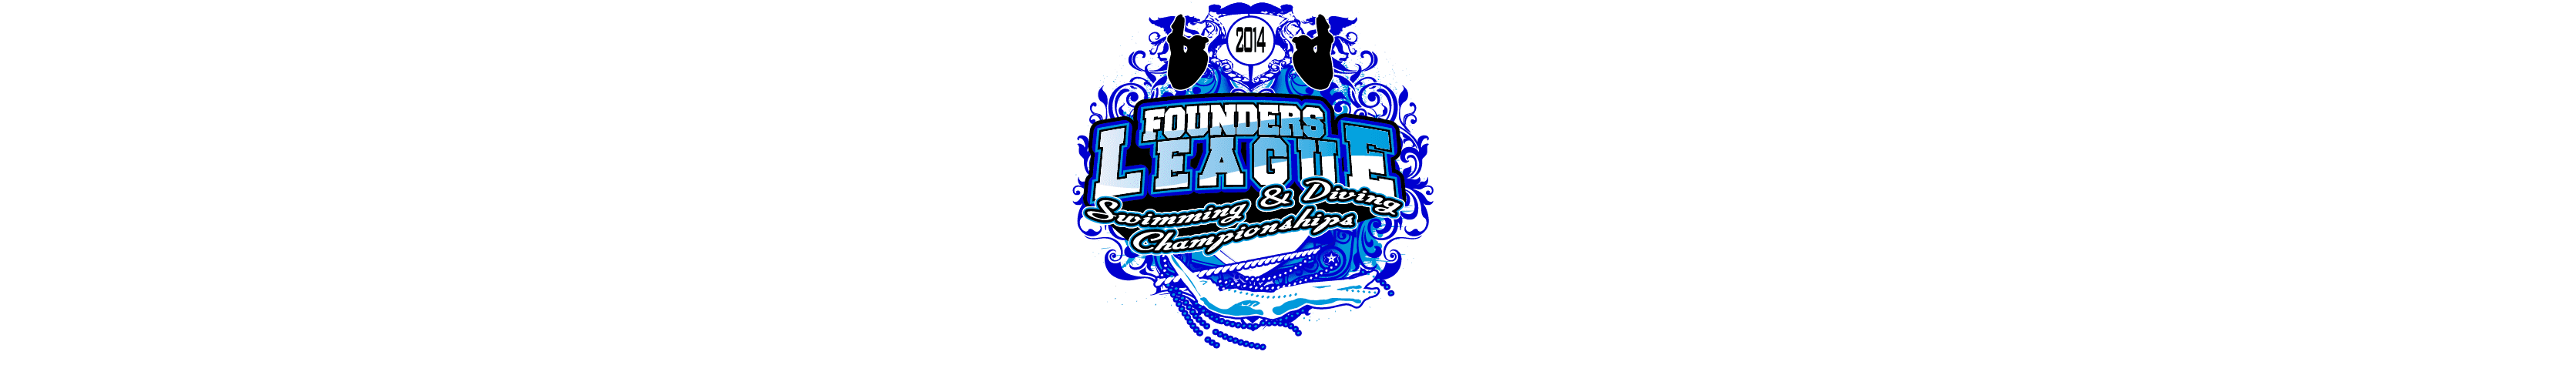 VECTOR LOGO DESIGN FOR PRINT FOUNDERS LEAGUE DIVING CHAMPIONSHIPS EVENT